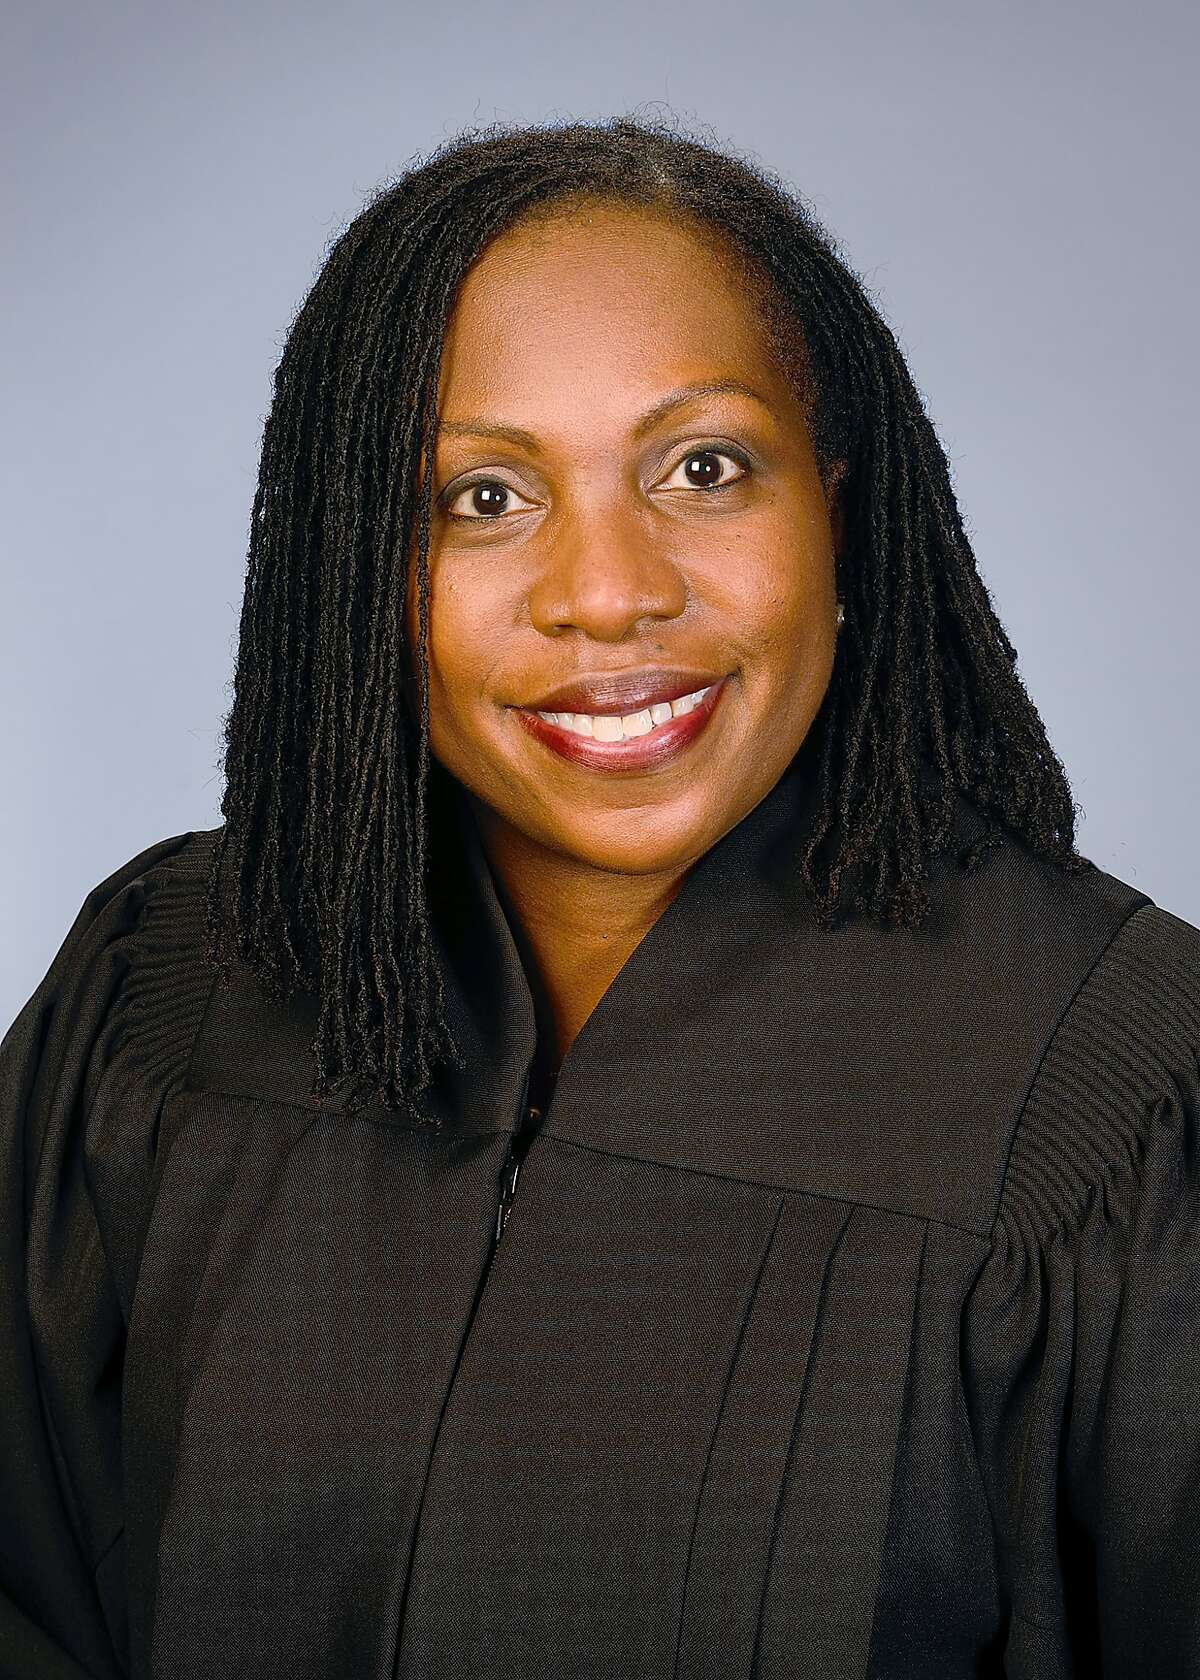 This photo provided by the U.S. Court of Appeals District of Columbia Circuit via Robin Reed Photography shows Judge Ketanji Brown Jackson. If Ketanji Brown Jackson were nominated and confirmed to the U.S. Supreme Court, she would make history several times over. She'd be the court's first black female justice.